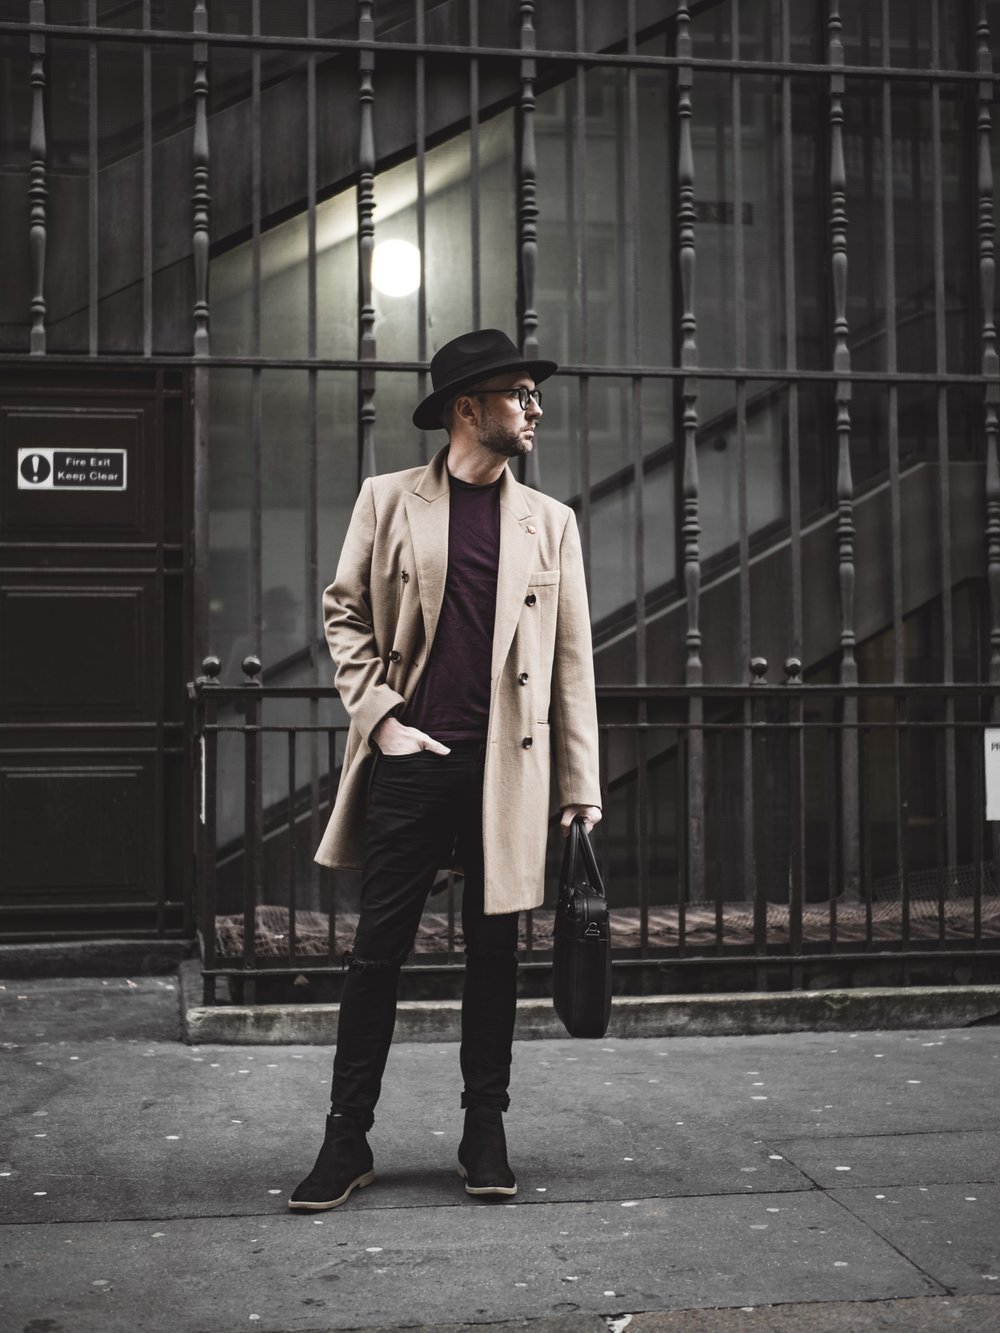 Jay McLaughlin Camel Coat Marks & Spencer Chelsea Boots Fedora Hat Briefcase Poppy Pin Remembrance Day Skinny Jeans Glasses Style OOTD OOTDMen Menswear Blogger